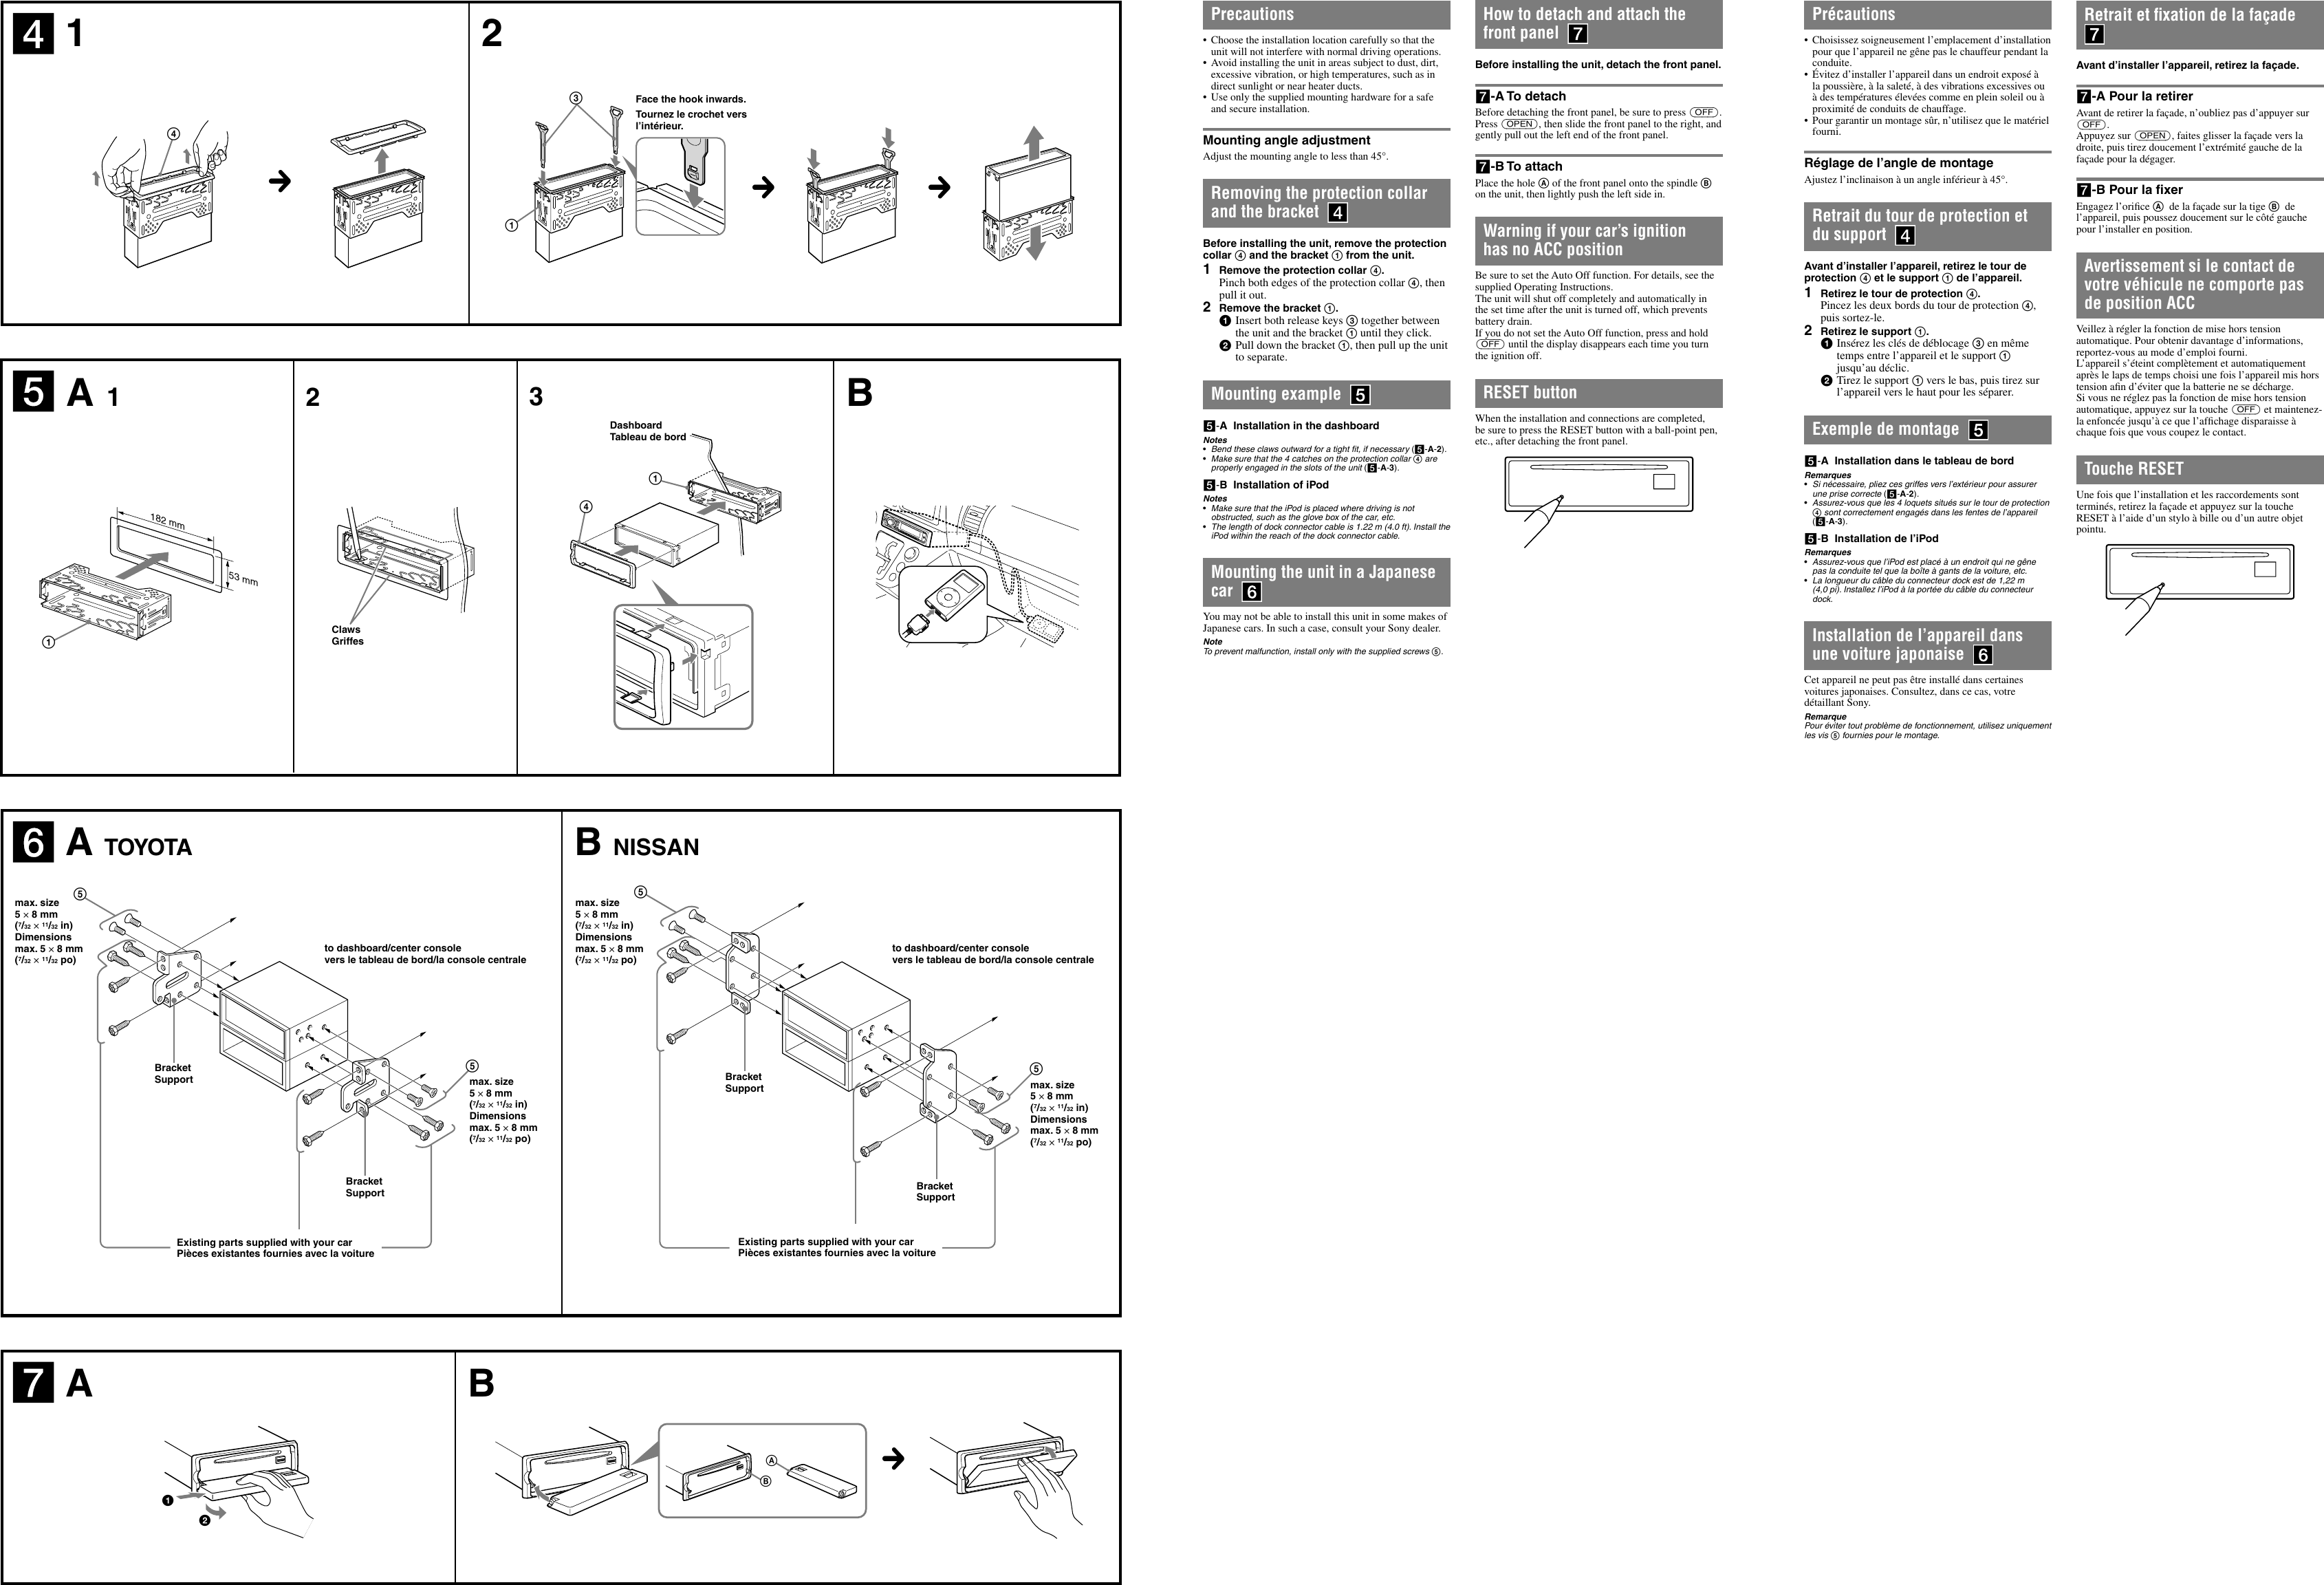 Sony Cdx Gt620ip Installation Connections Manual Gt62ipw Wiring Diagram Page 2 Of